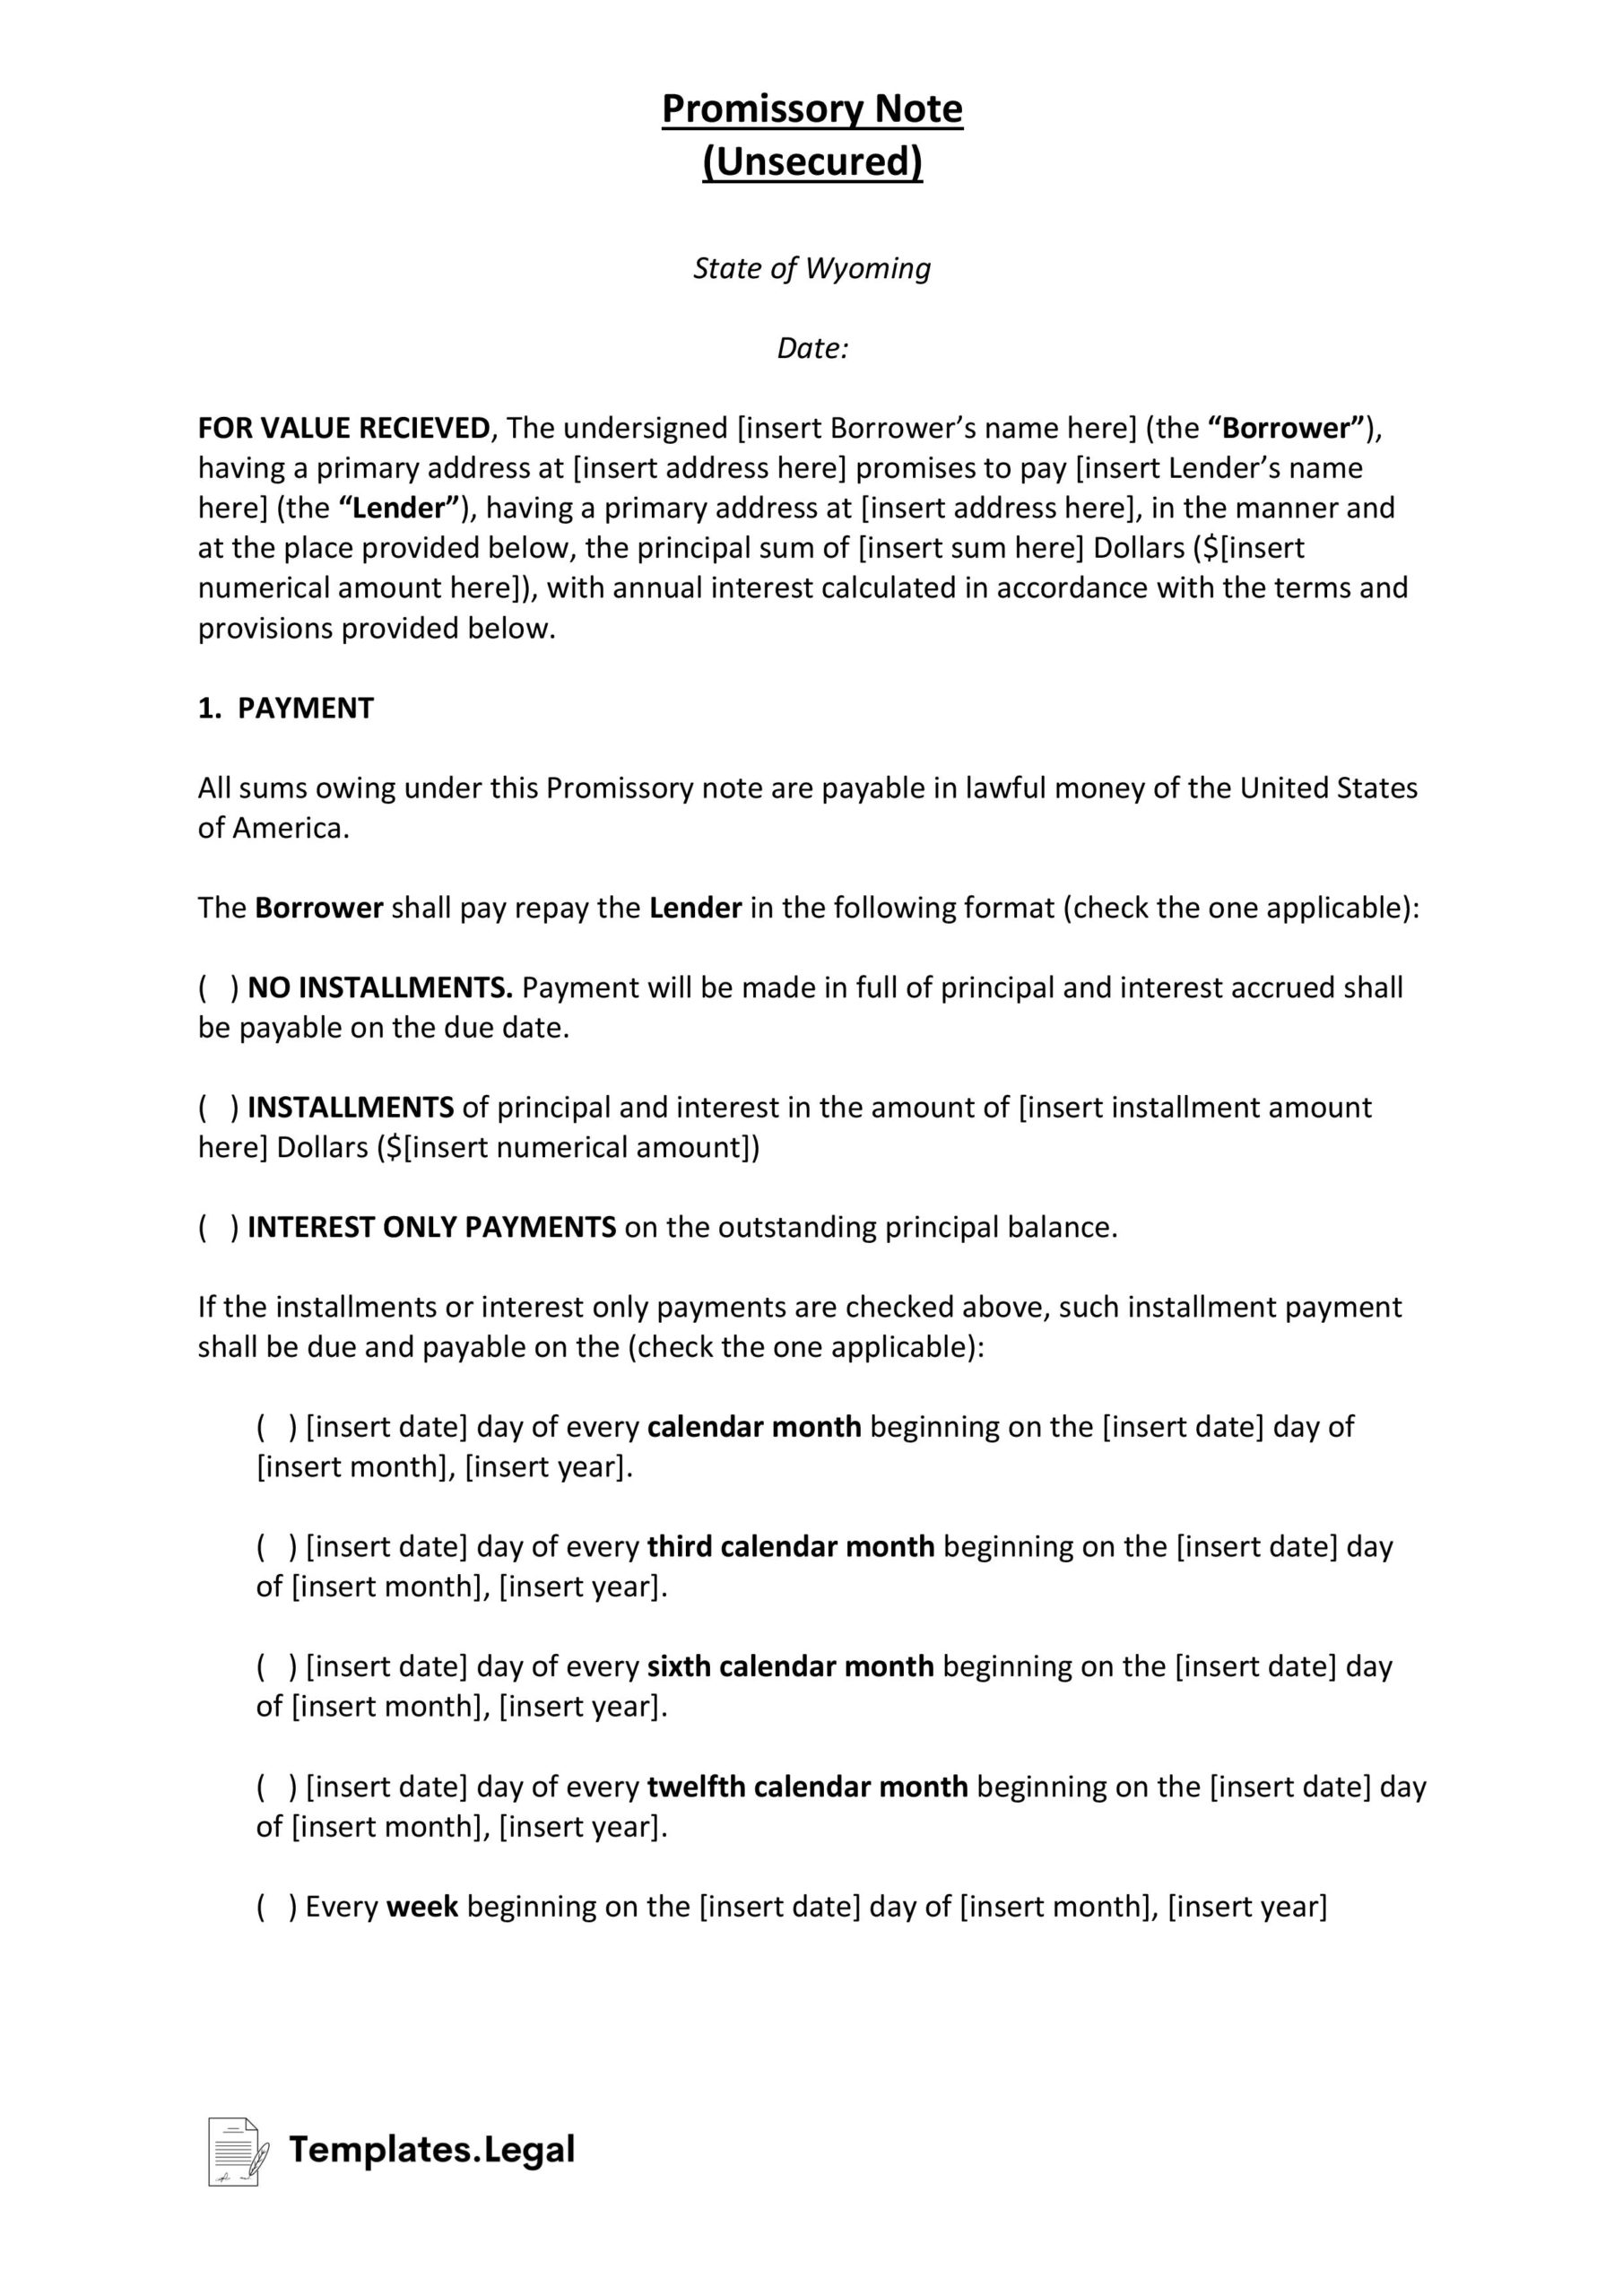 Wyoming Unsecured Promissory Note - Templates.Legal